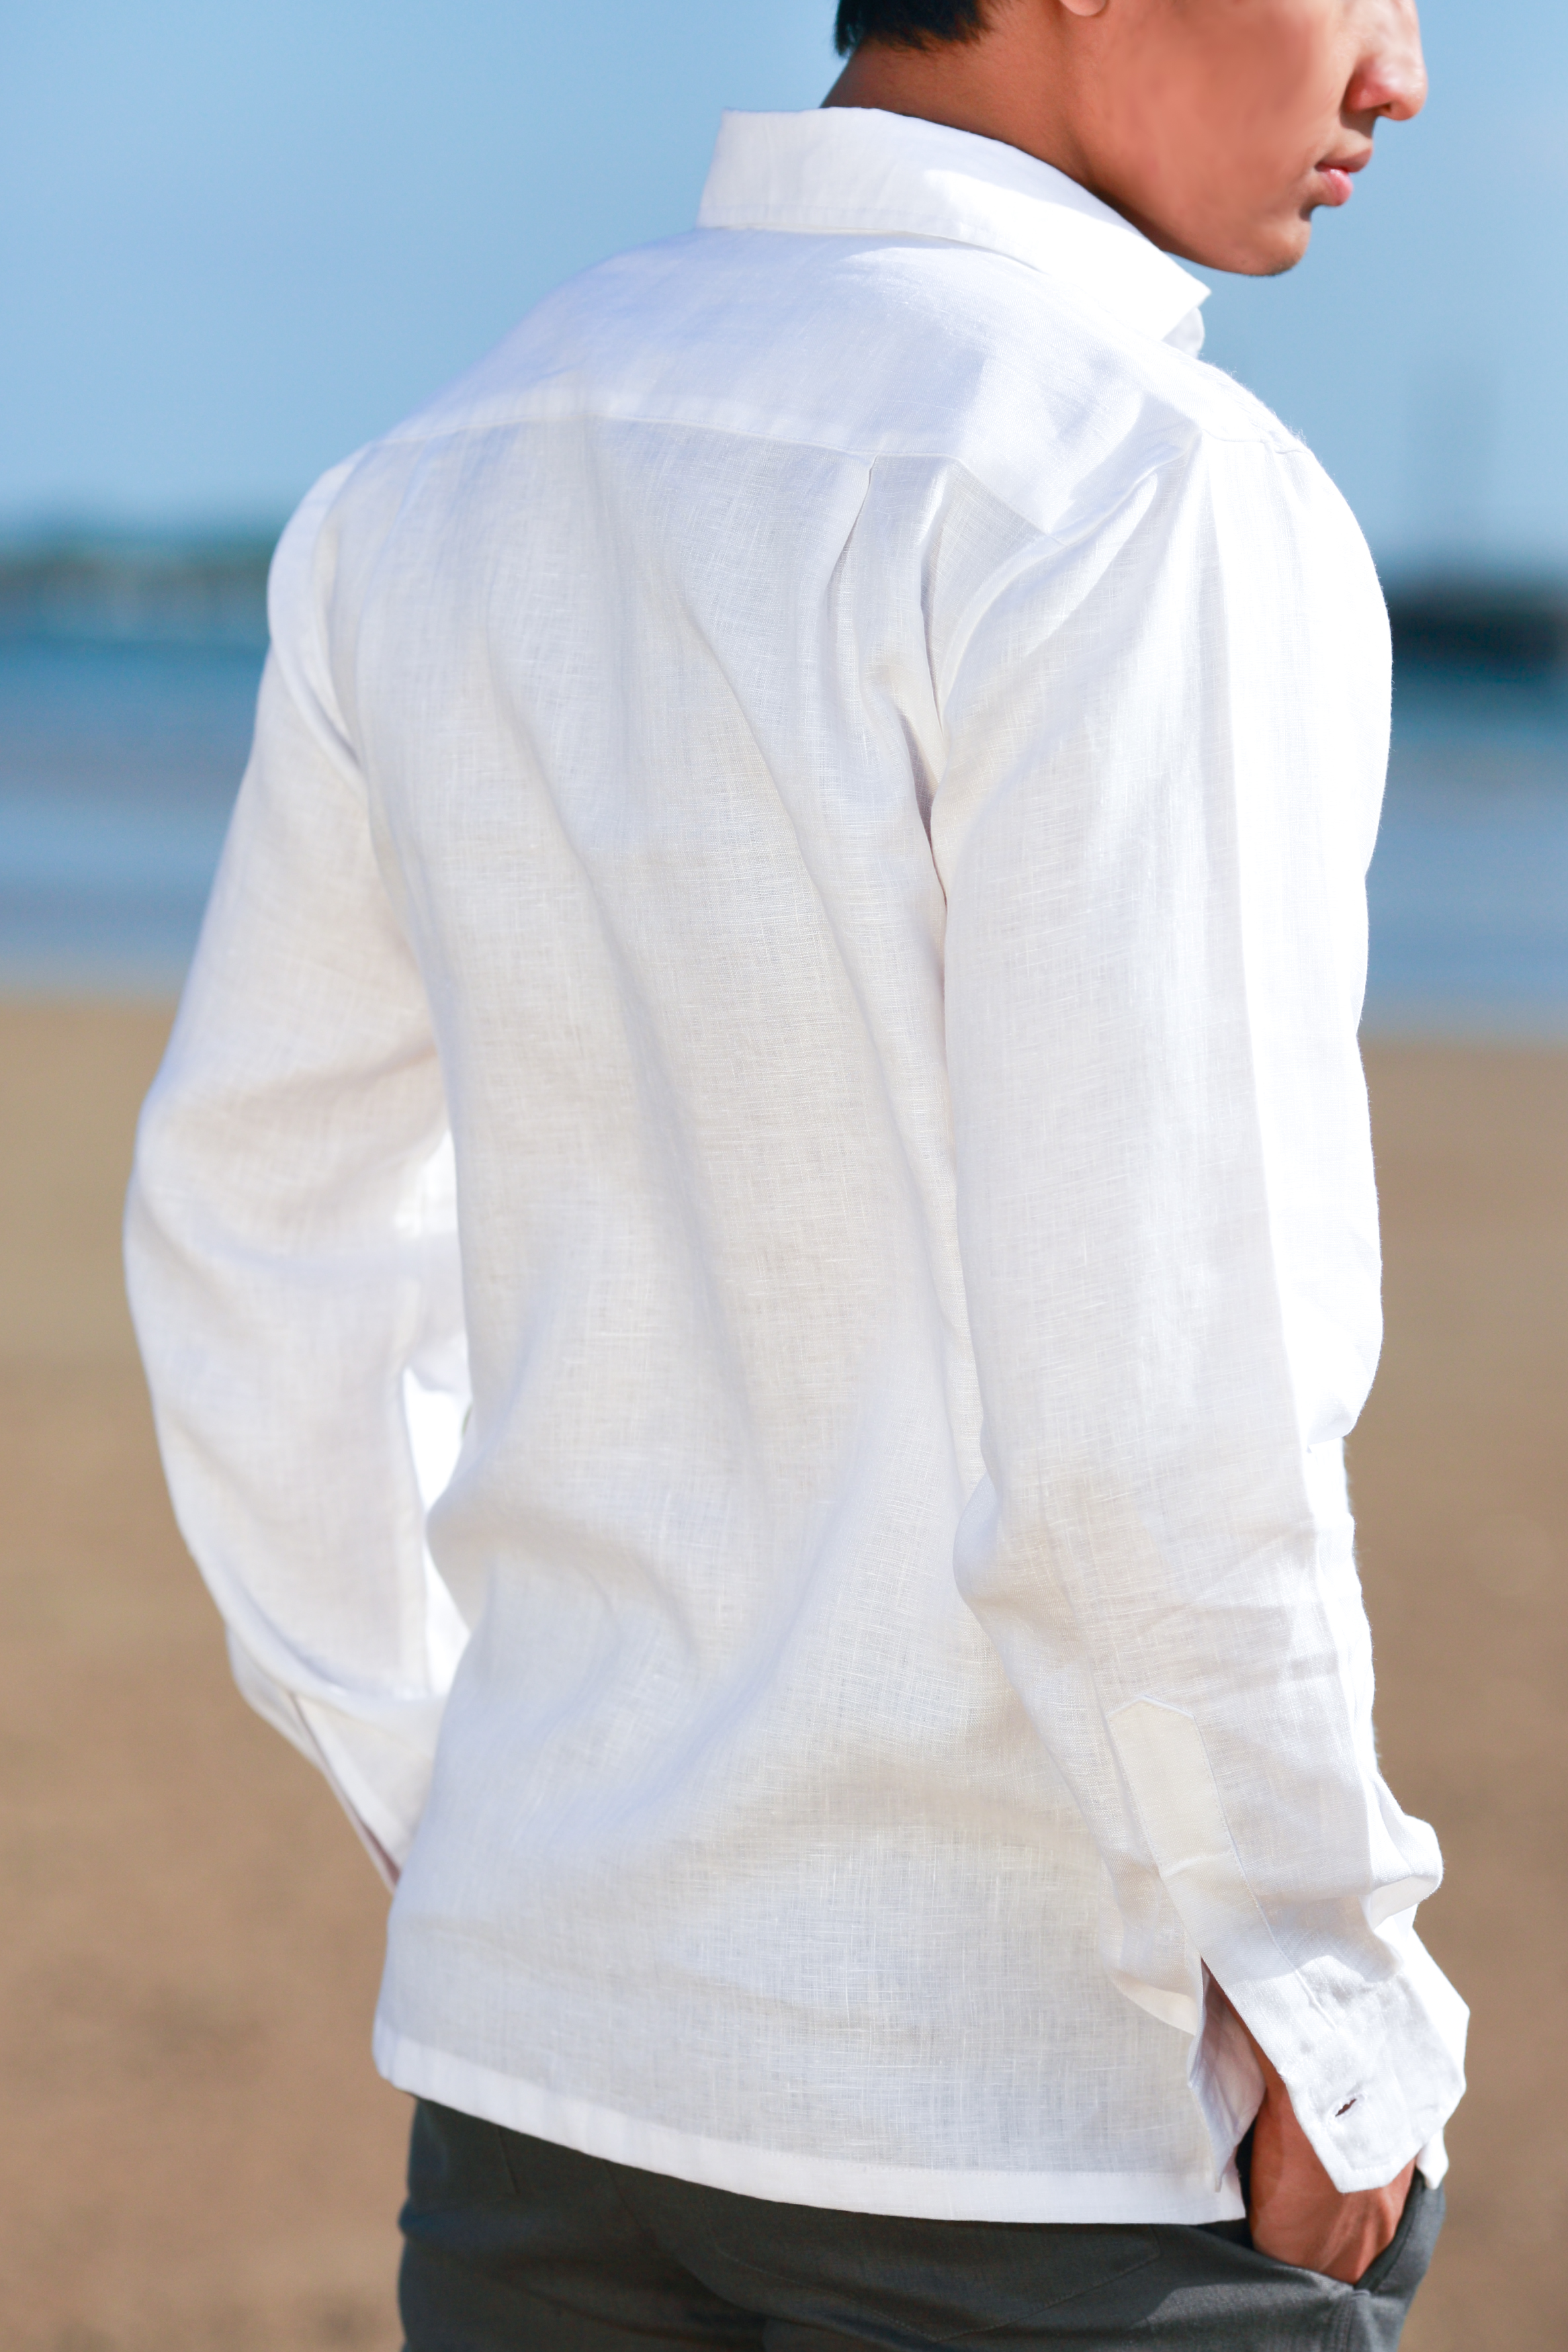 Men S White Linen Long Sleeve Shirt Hand Stitched Design